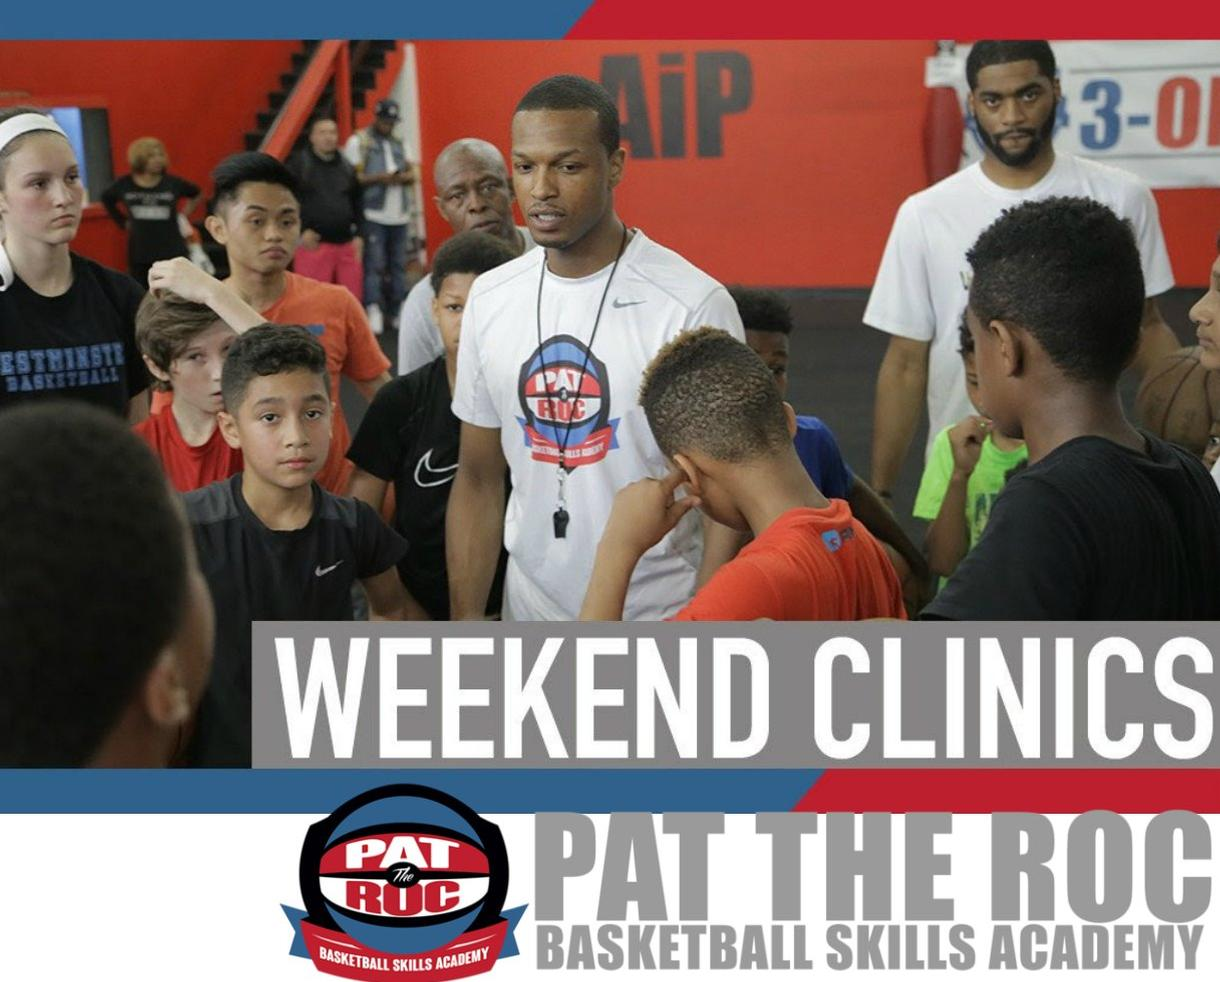 Pat the Roc Basketball Skills Academy Drop-In Clinics